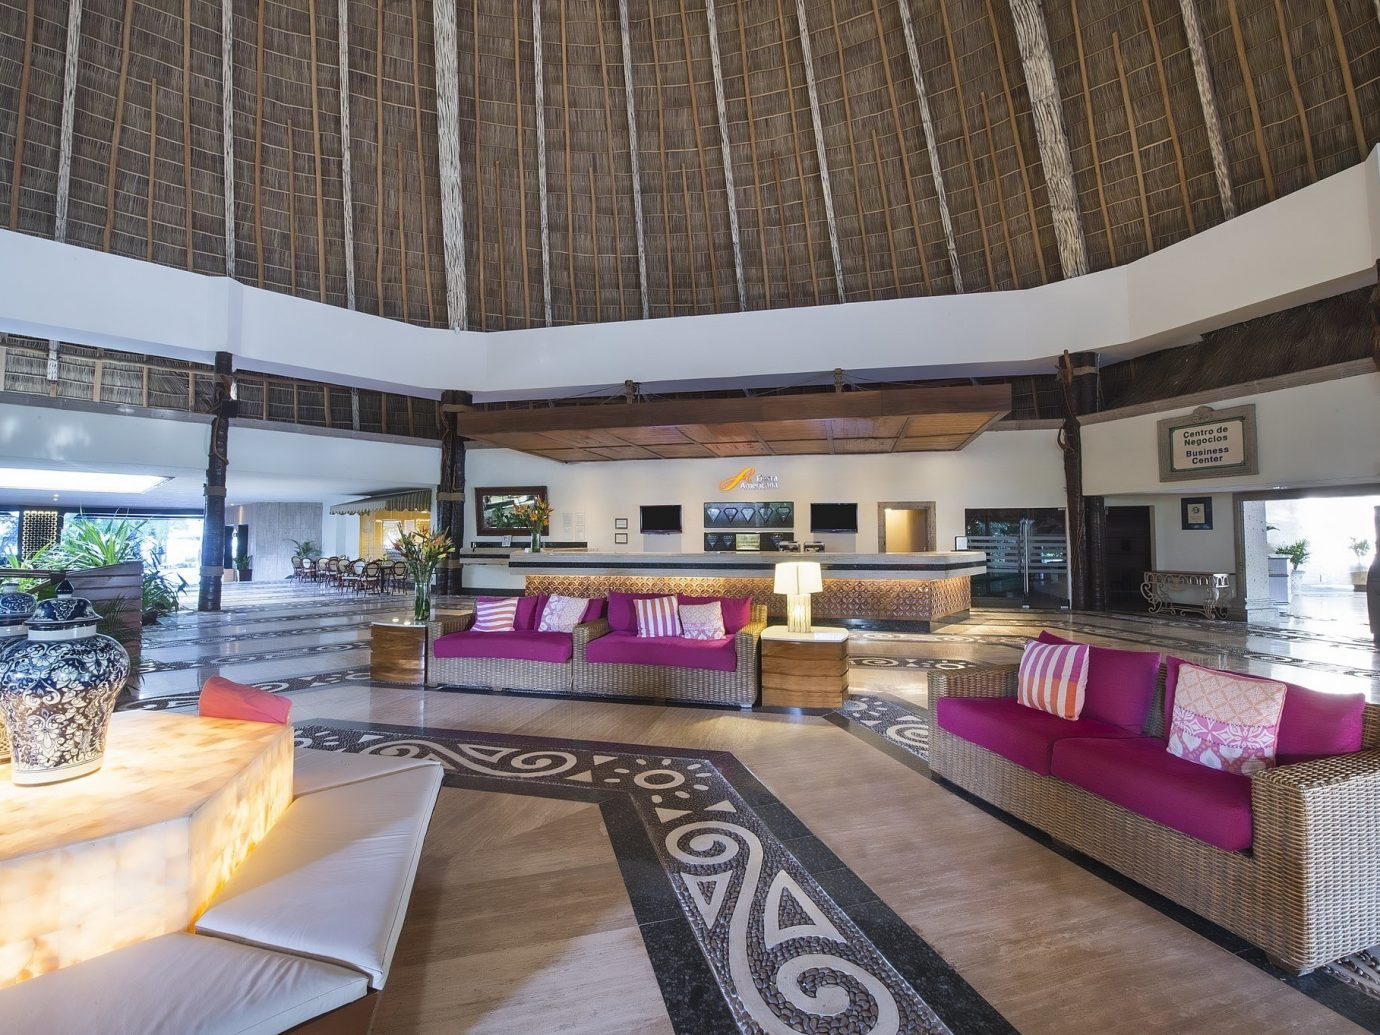 All-Inclusive Resorts Hotels table indoor interior design living room Lobby real estate ceiling estate house interior designer loft